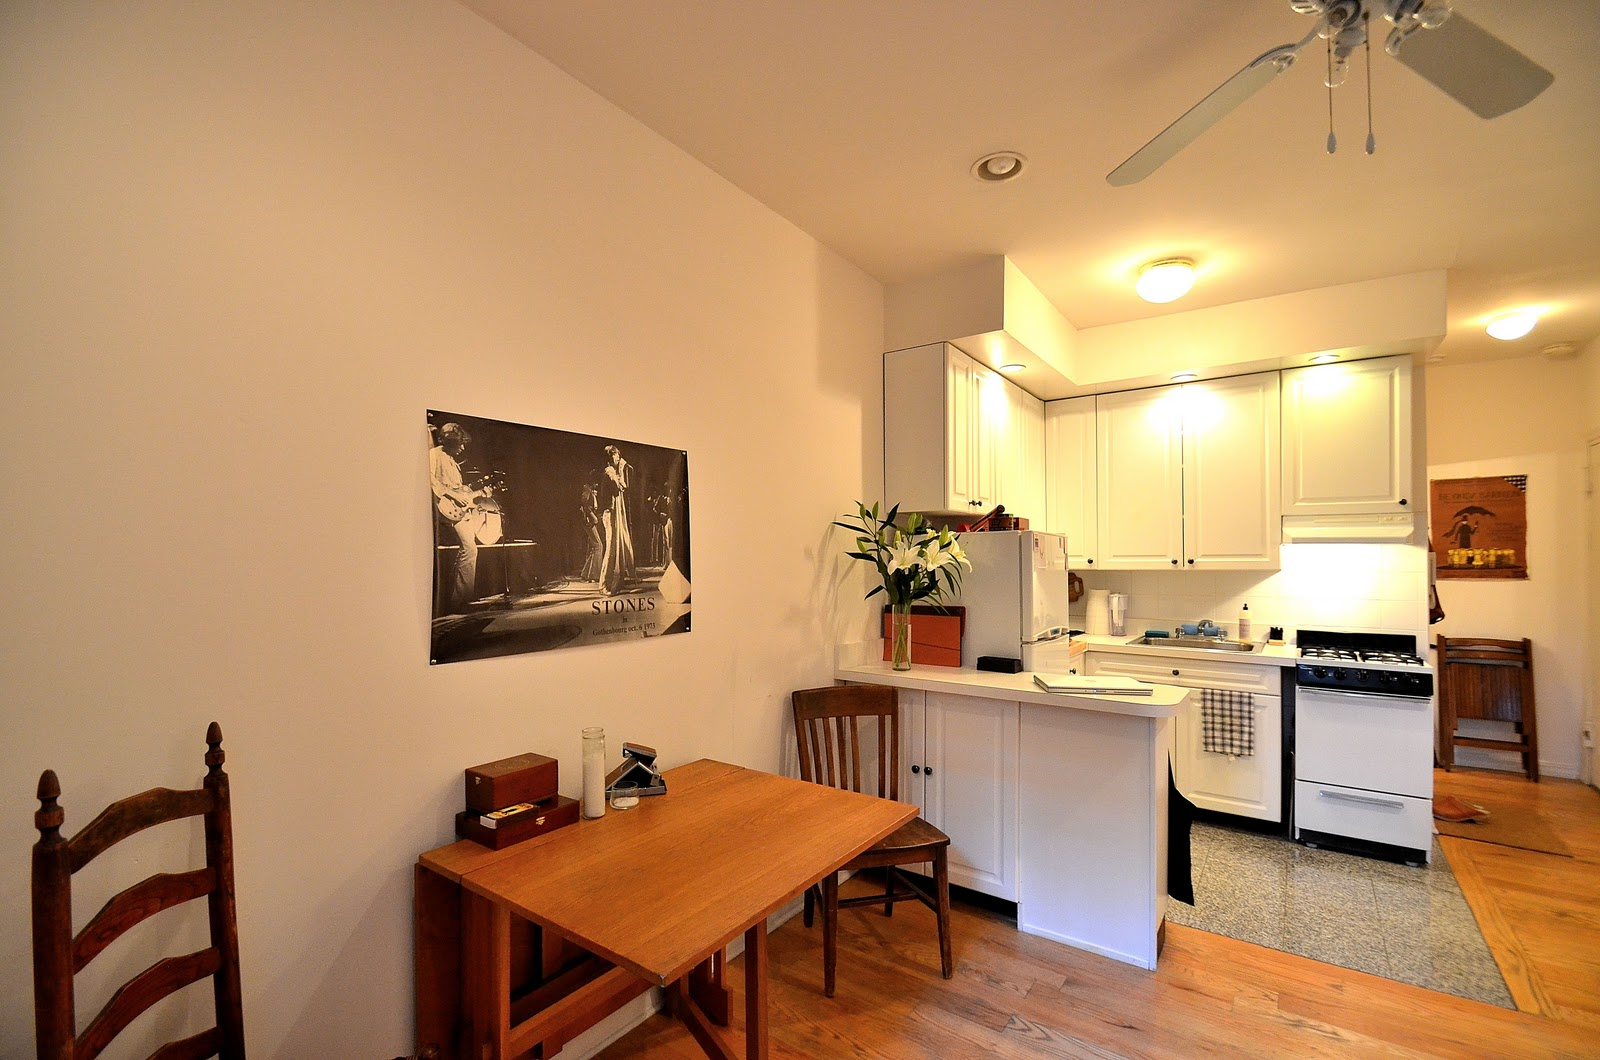 City living apt blog welcome nyc east village studio for rent - Studio apartment ...